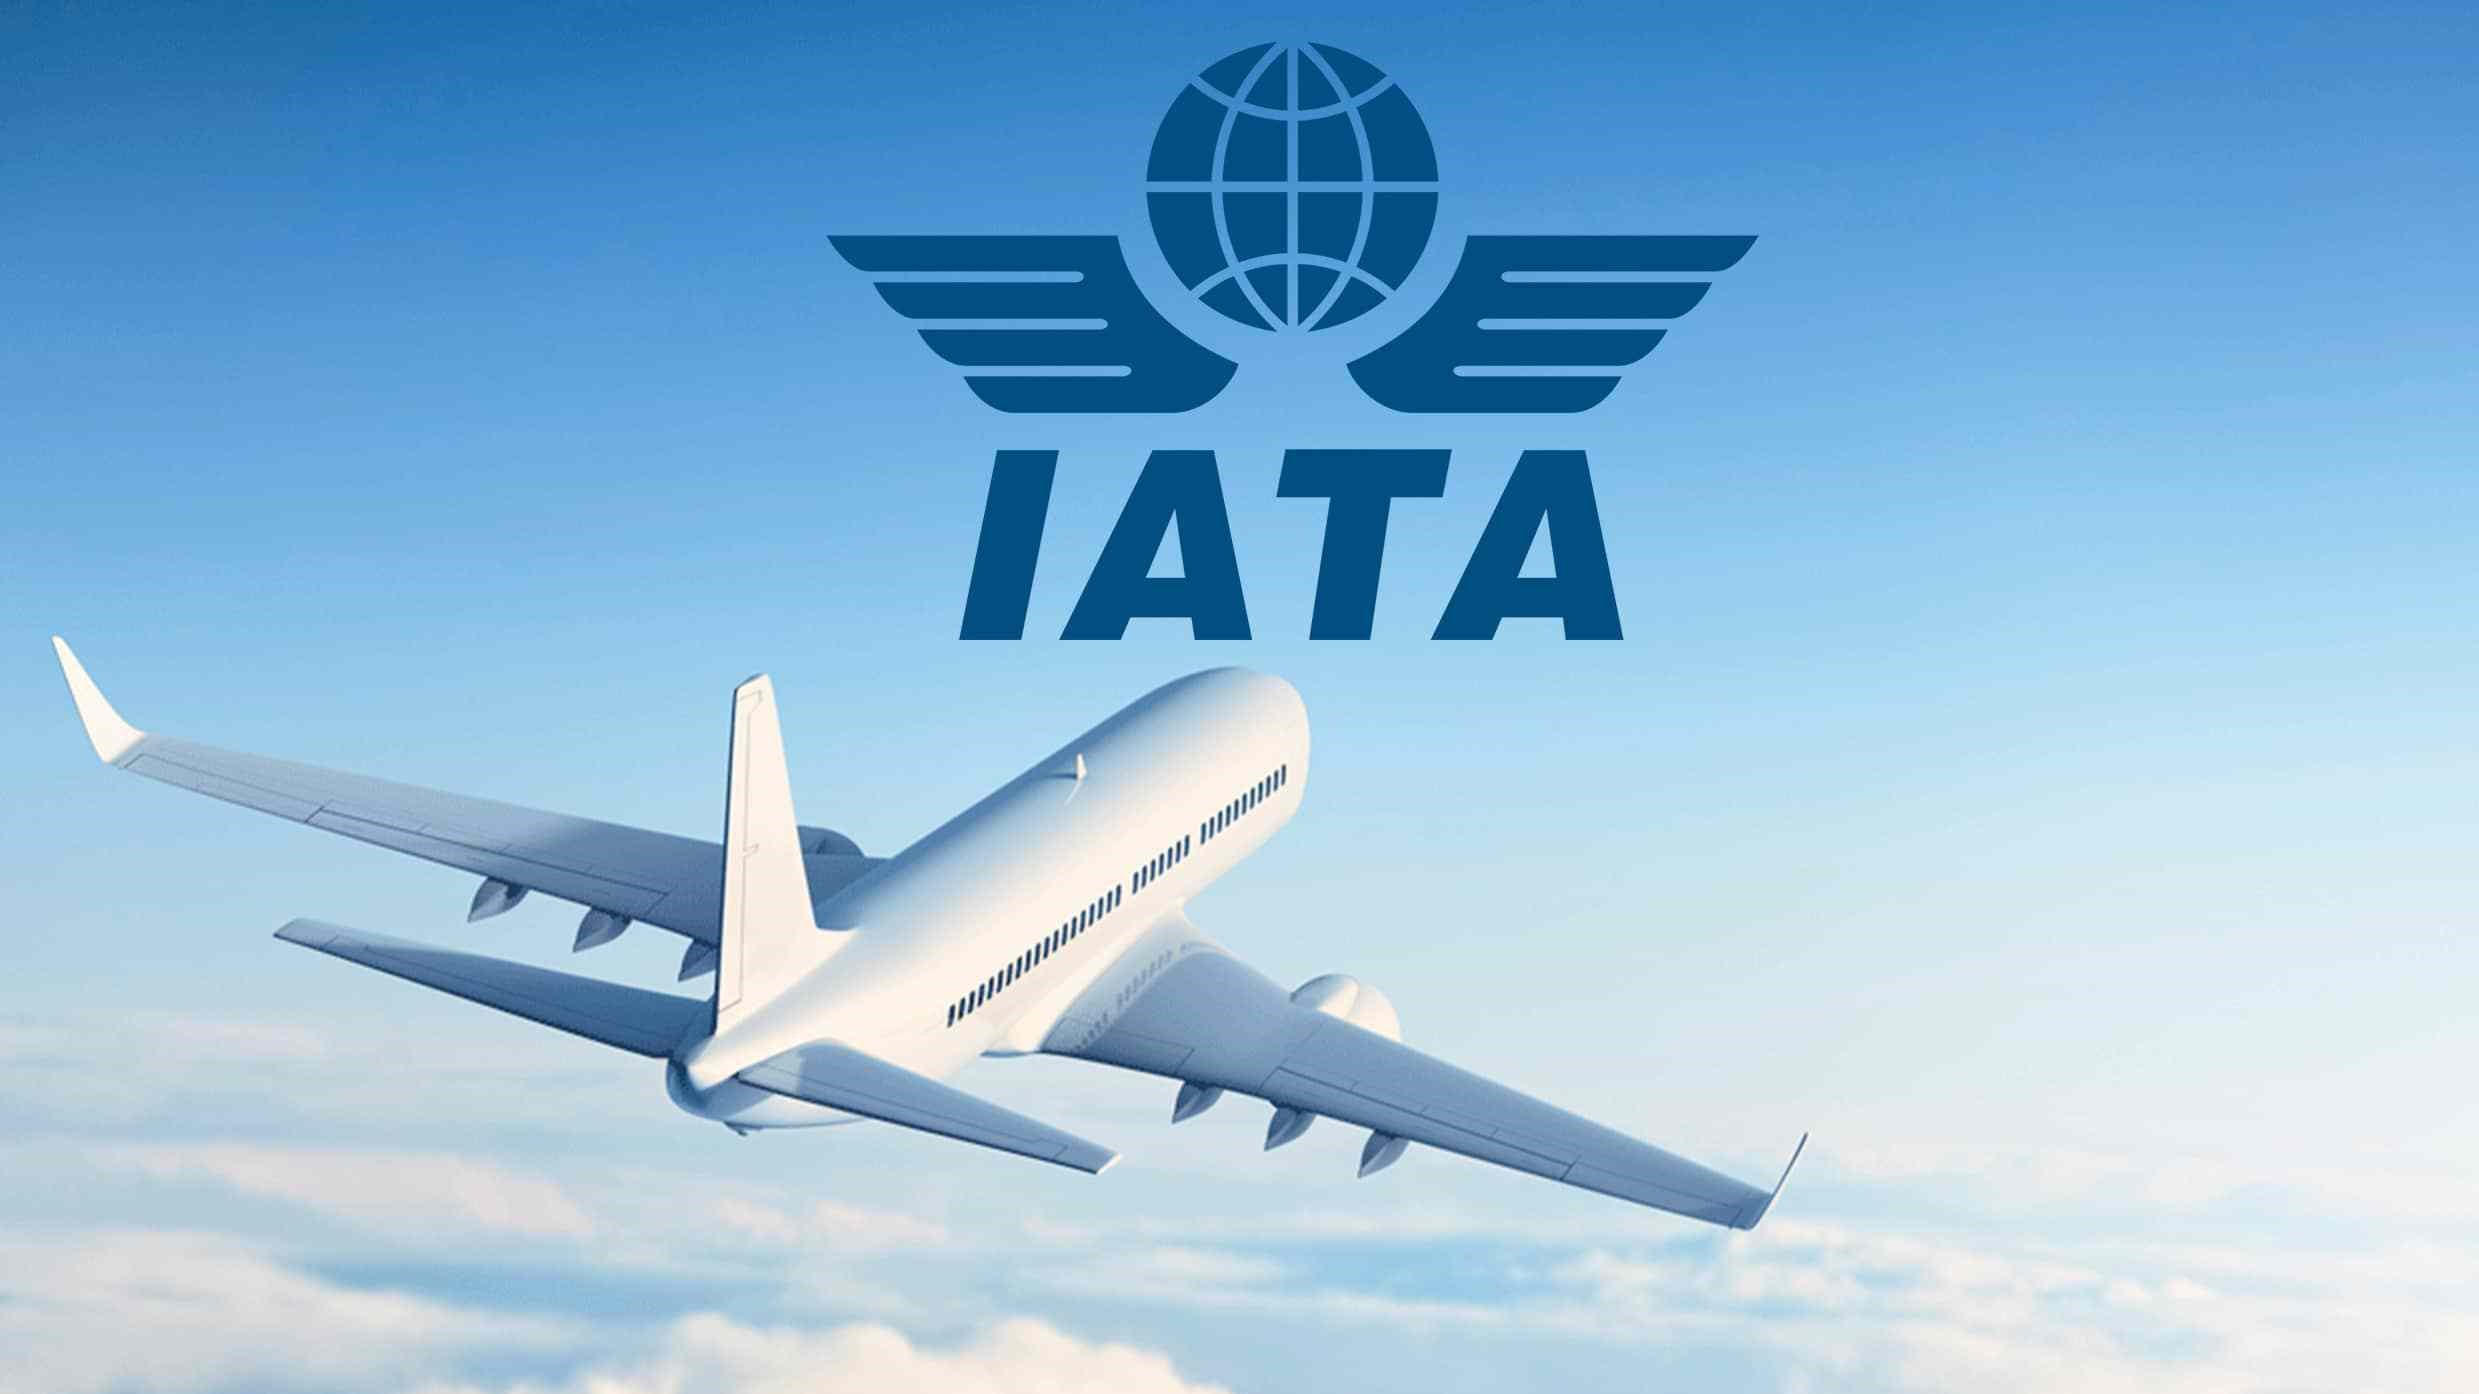 IATA Training to Boost Efficiency in Aviation Sector